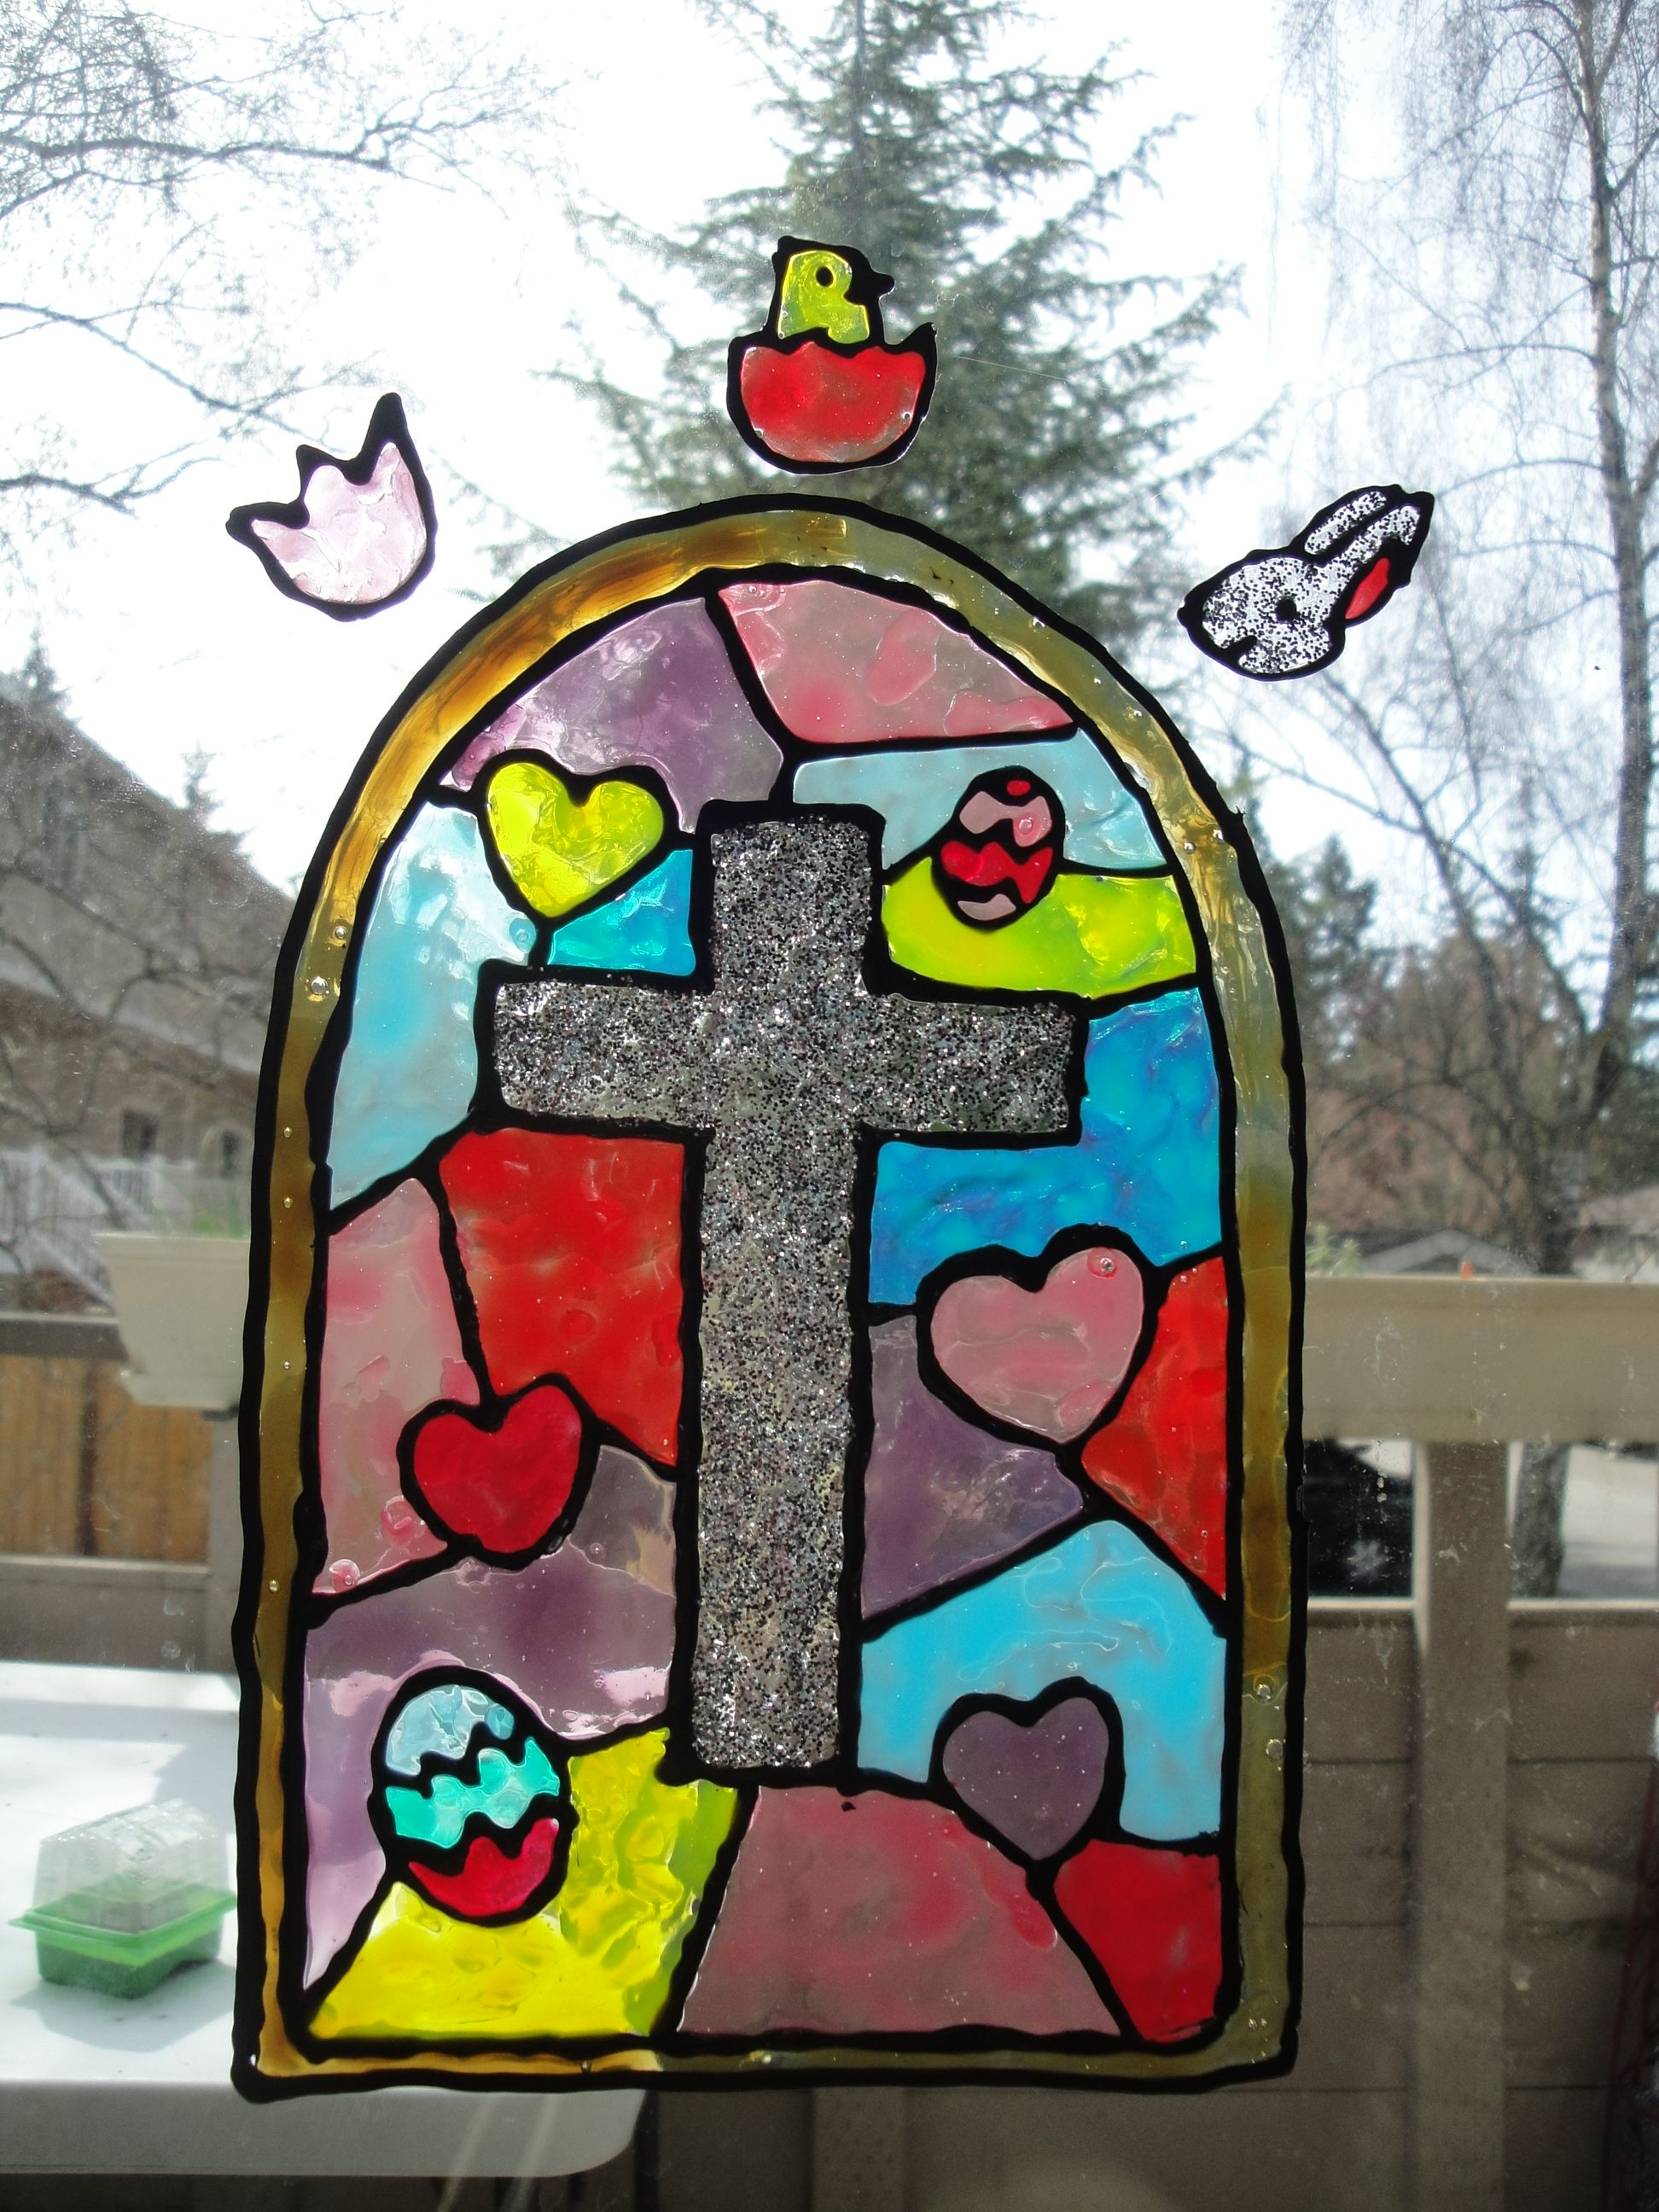 diy stained glass window clings what 39 s the occasion pinterest. Black Bedroom Furniture Sets. Home Design Ideas